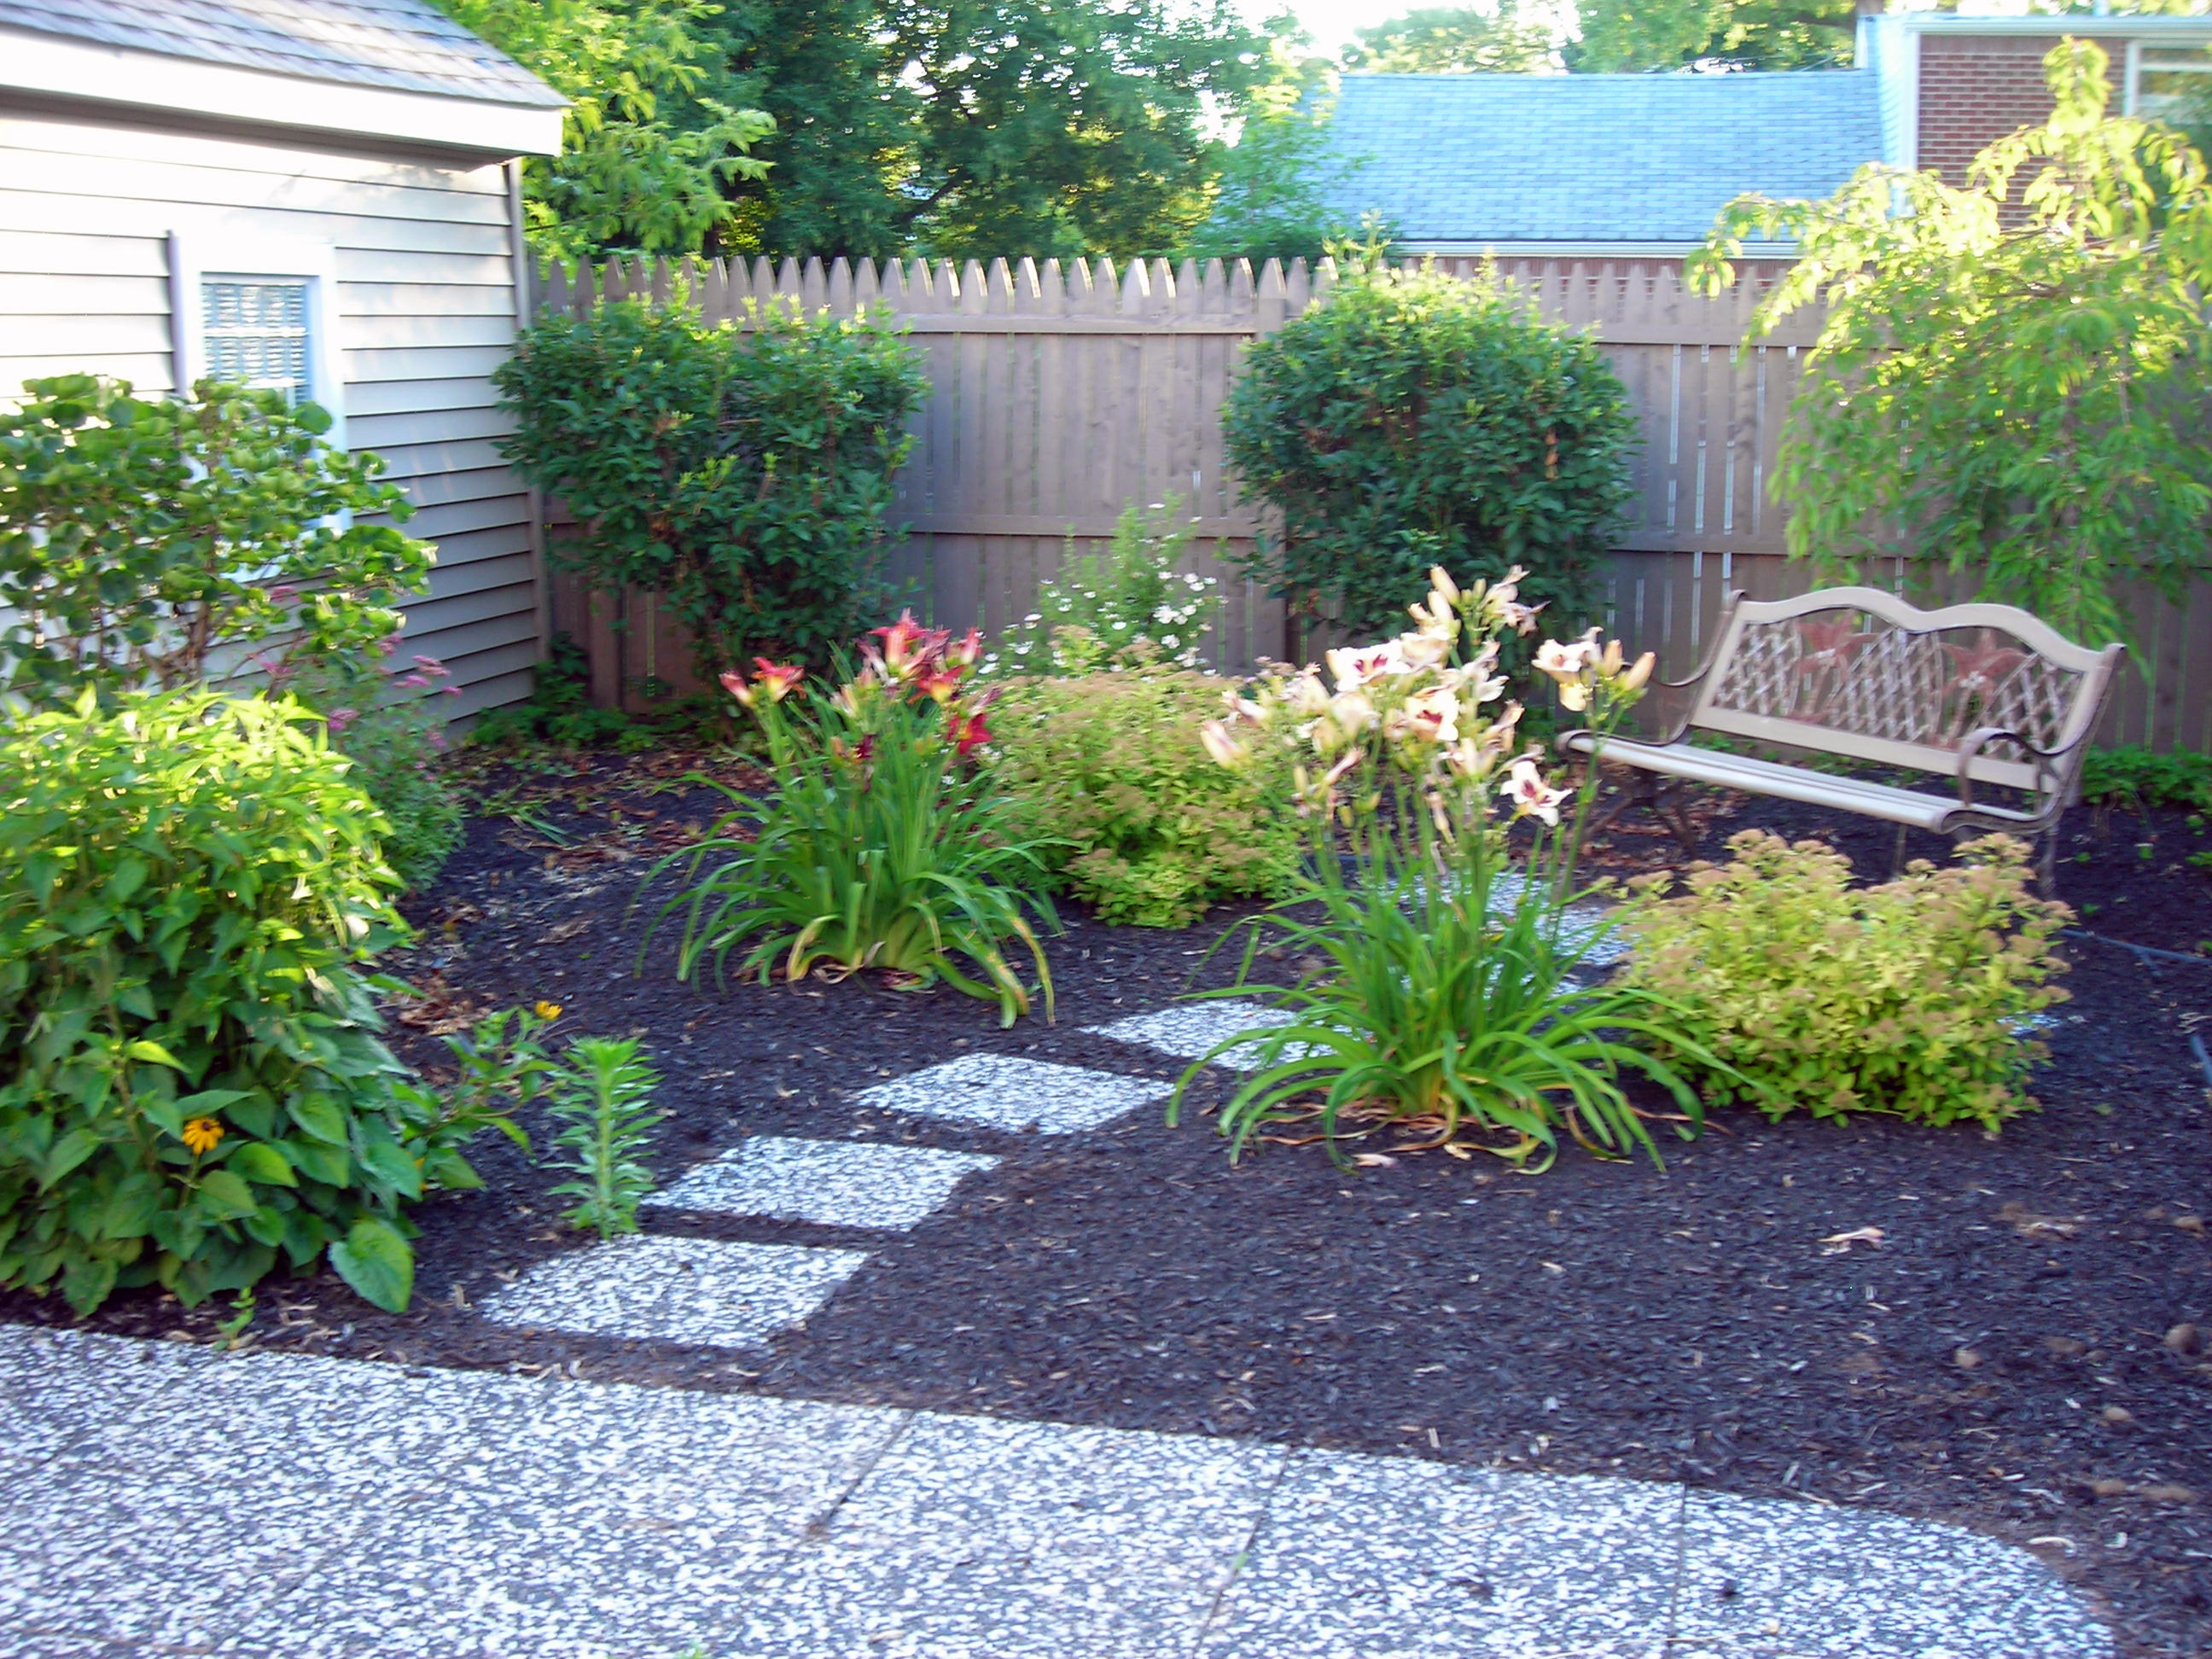 no grass back 1 - Buffalo-NiagaraGardening.com on Patio And Grass Garden Ideas id=88824